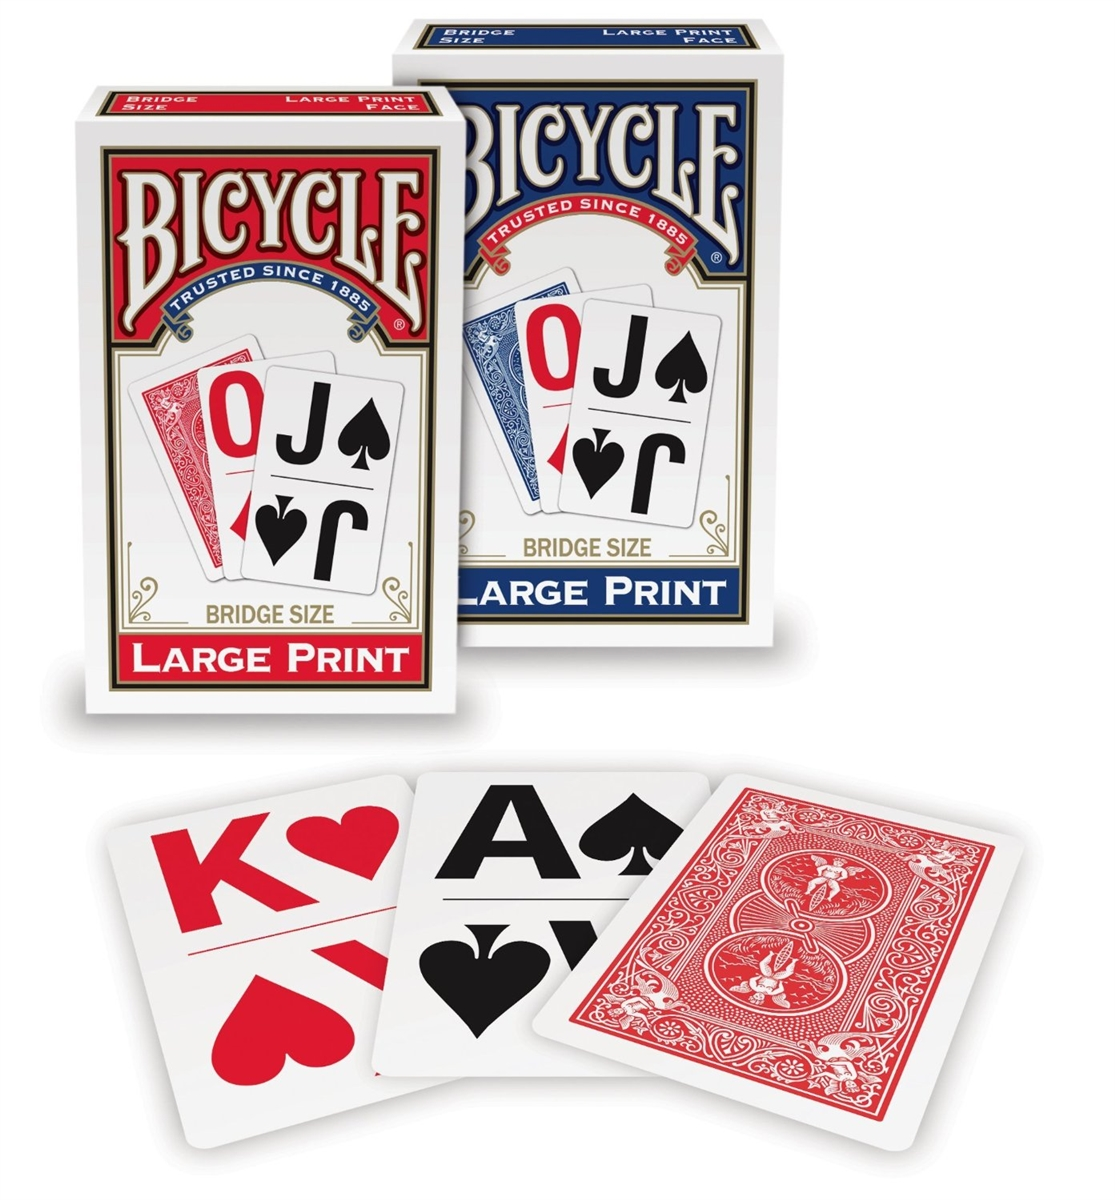 Bicycle Bridge, Large Print, 12 Decks Red/Blue